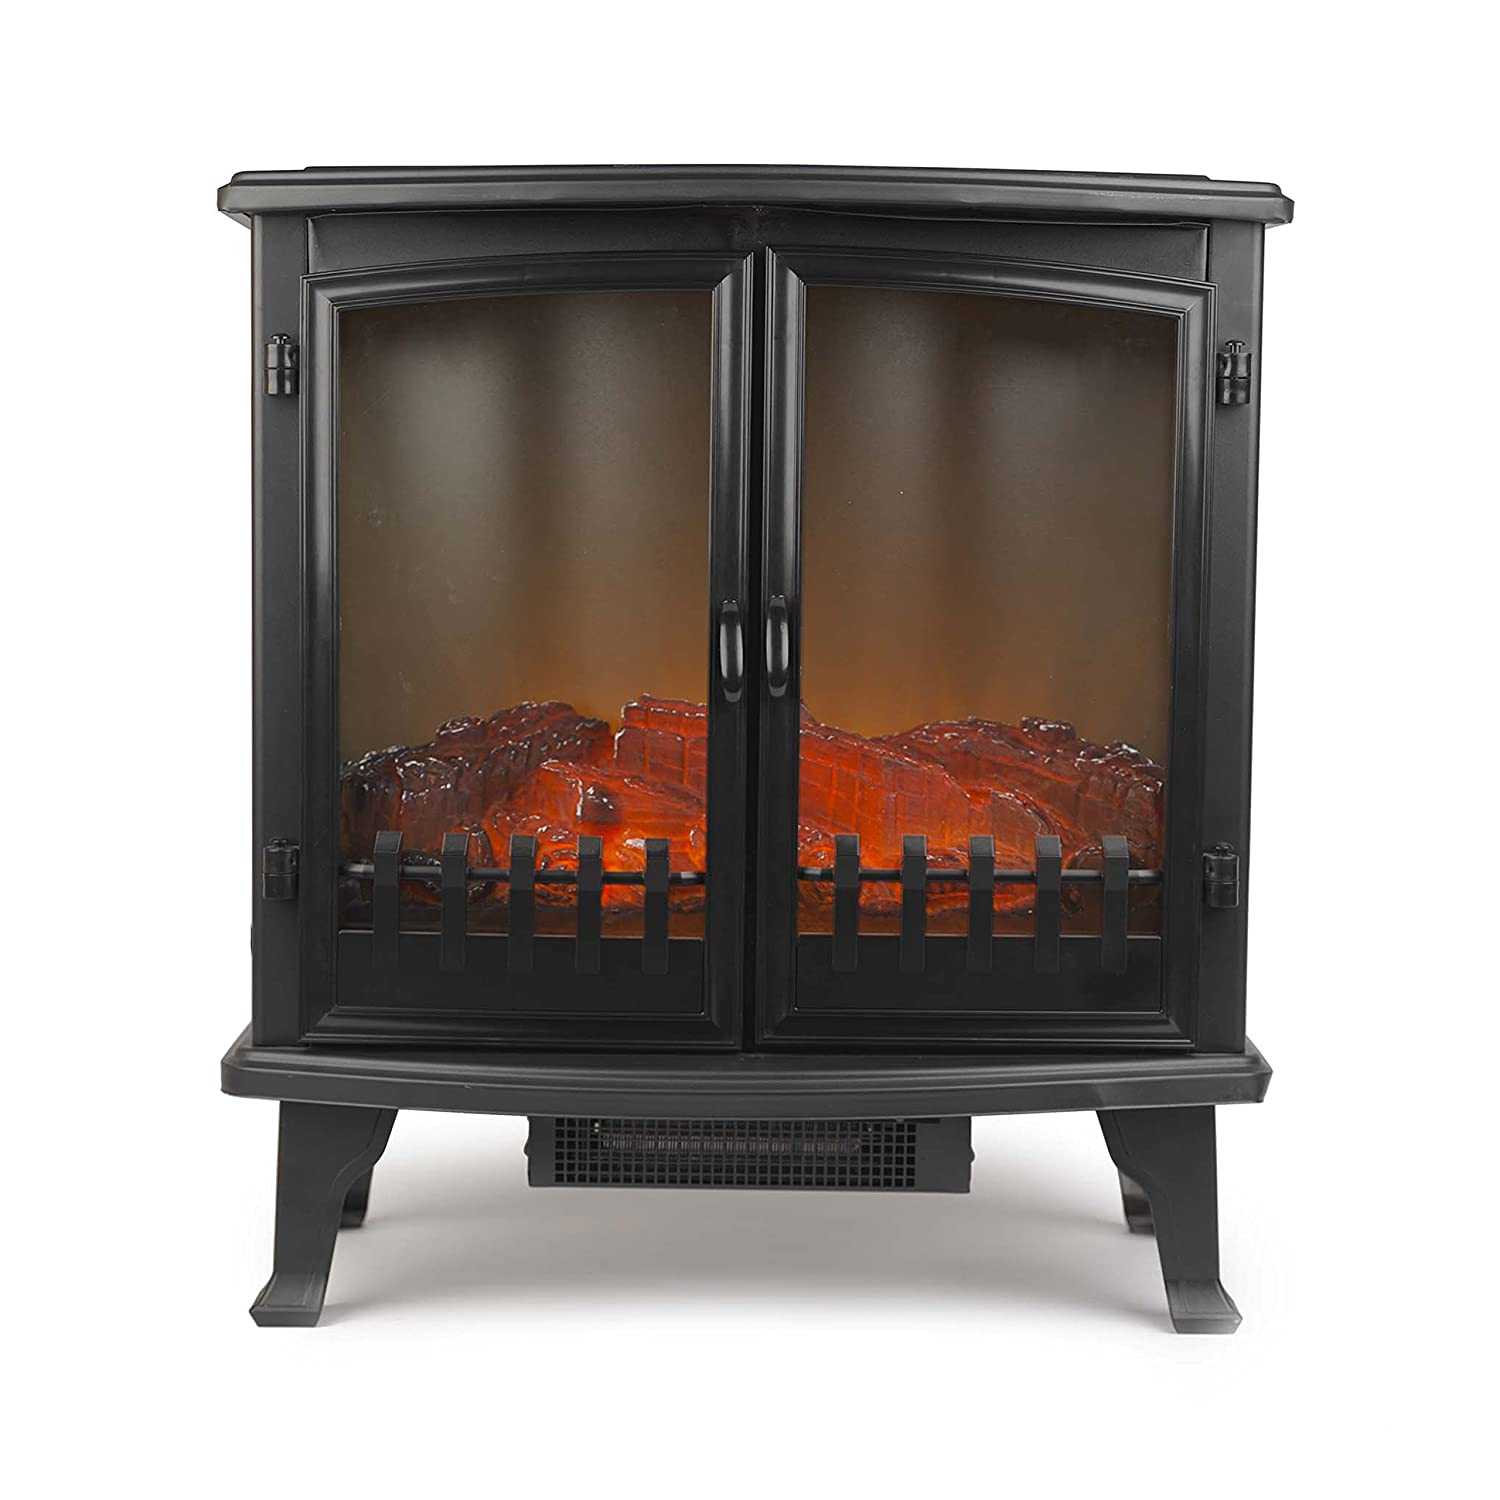 Beldray EH1363GSAR Paguera Glass Sided Free Standing Electric Stove with LED Flame Effect, 1800 W